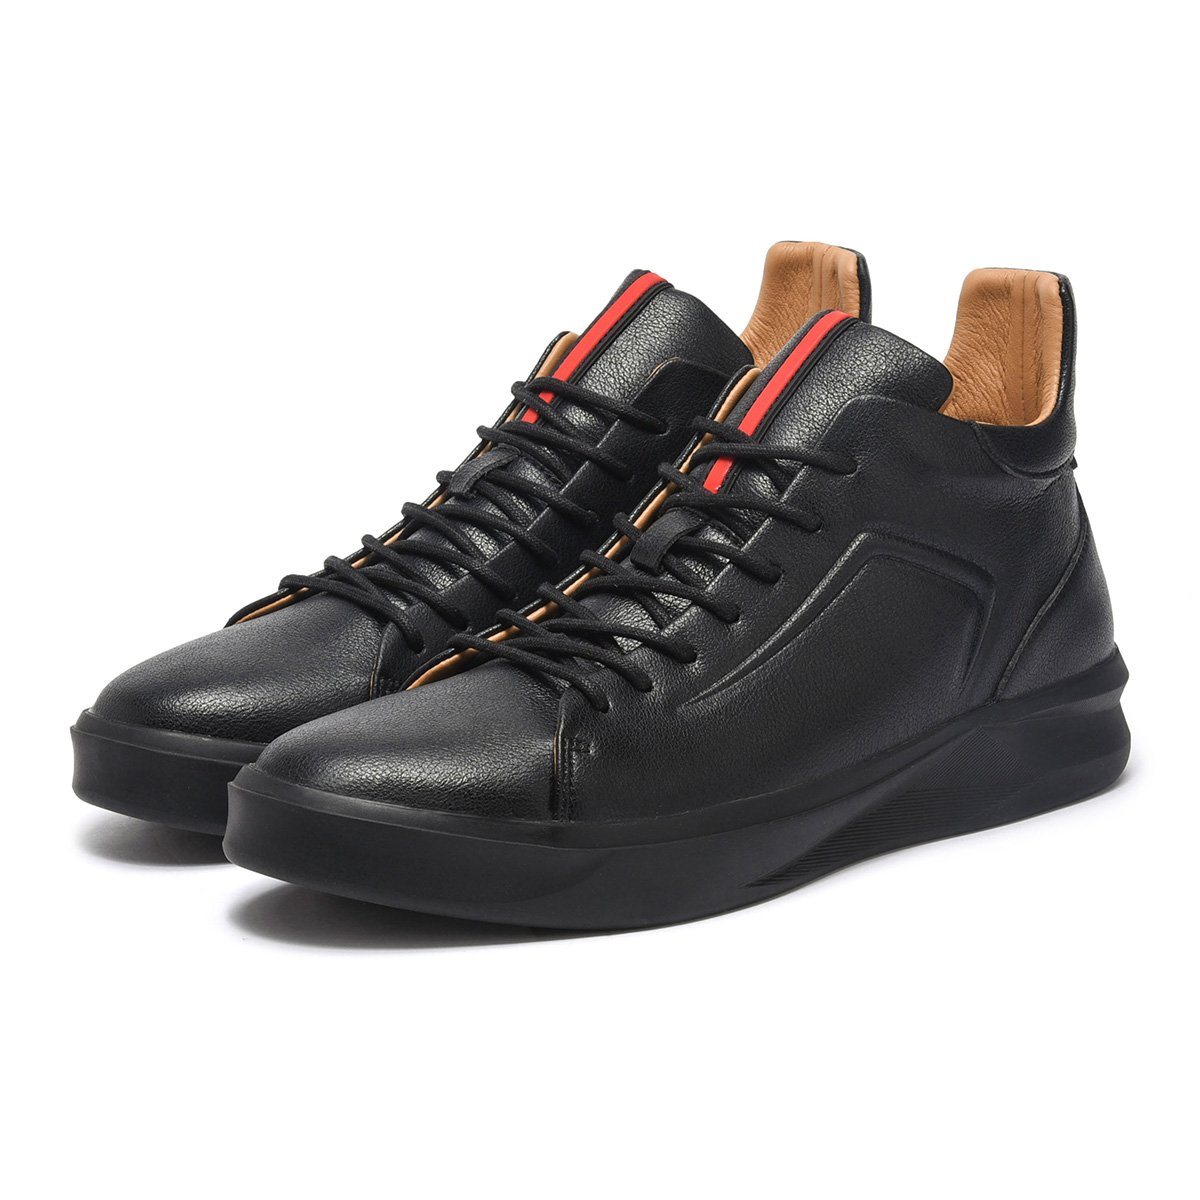 ARTISURE Men's Classic Black Genuine Leather High-Top Casual Sneakers Fashion Ankle Boots 10 M US SKS-1019HEI100 by ARTISURE (Image #8)